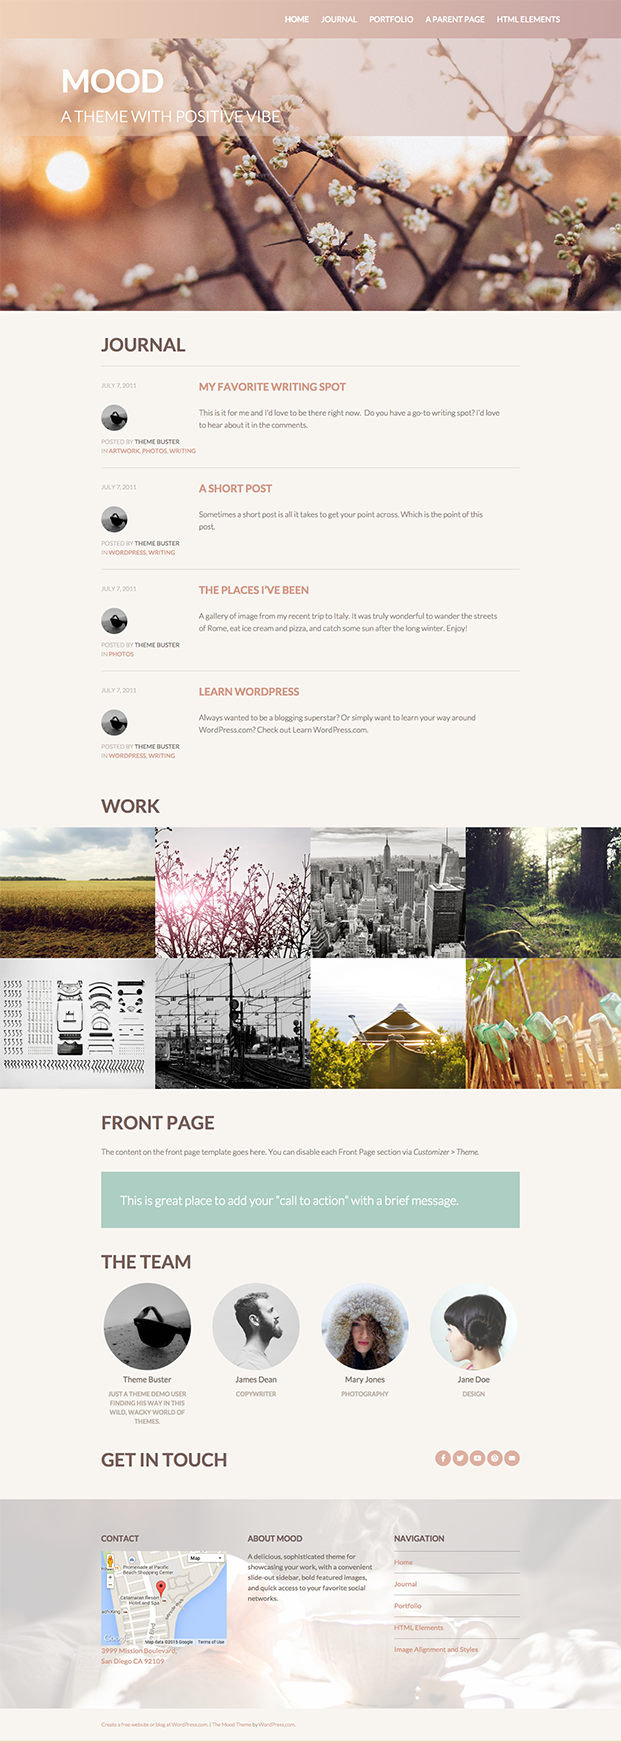 Mood Theme - Front Page Template